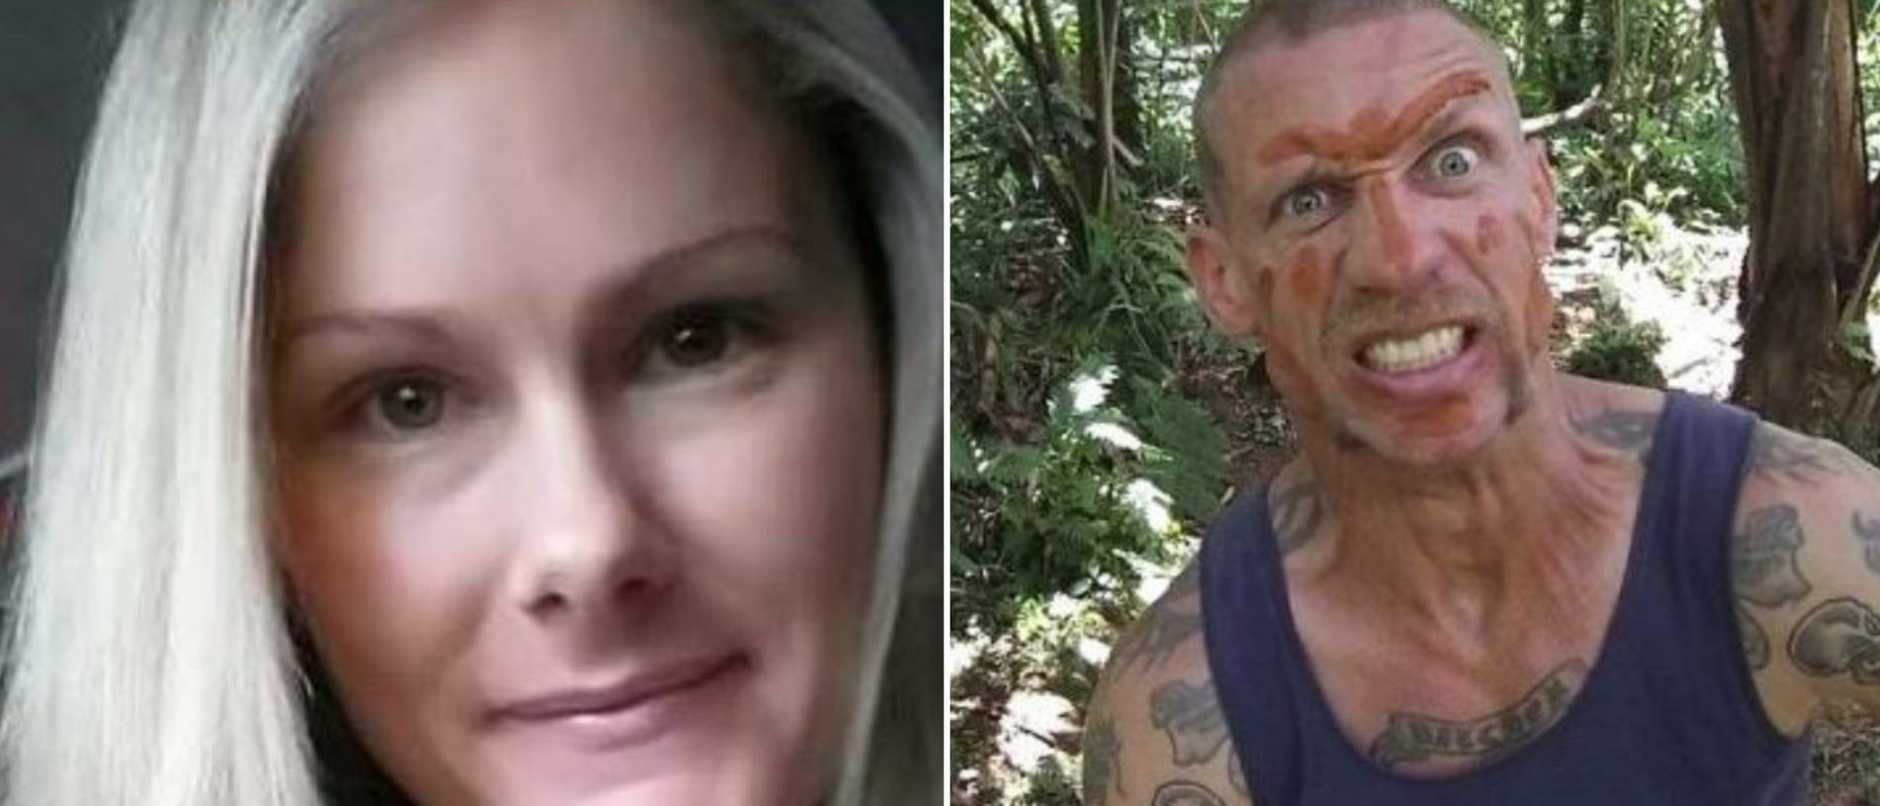 Corinne Henderson's new love has told a jury he heard her last words as he hid in a bathroom just metres from where she was killed.